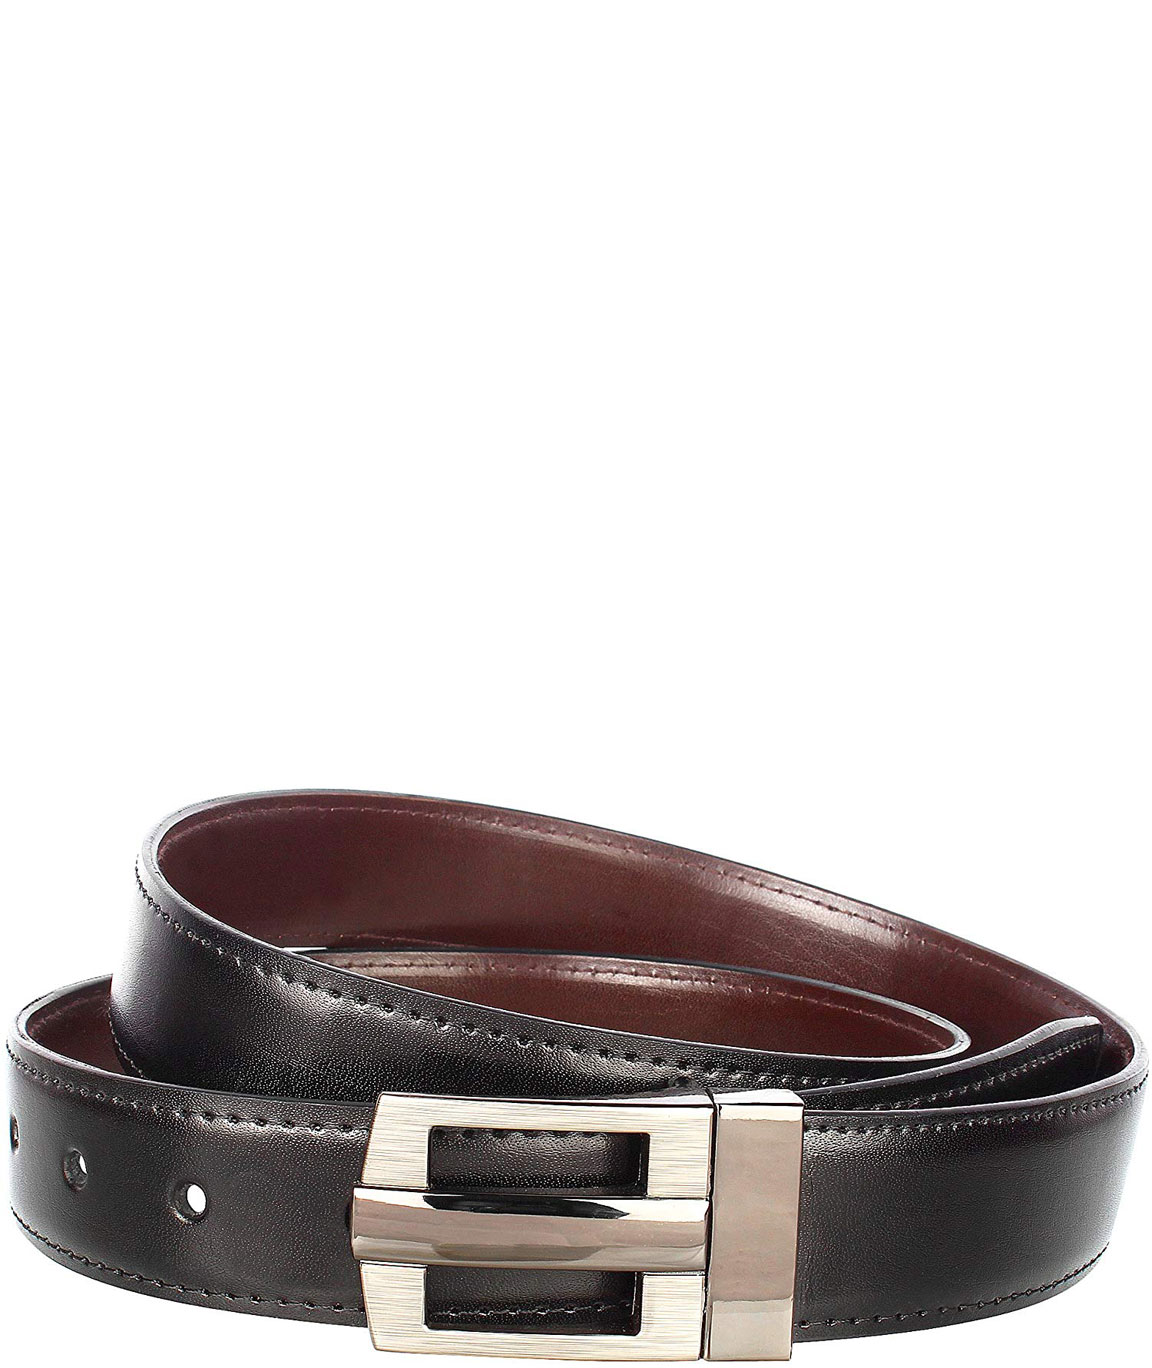 Alfami Mens PU Leather Belt Hook Buckle Smooth Texas Pattern Free size upto 42 inch waist